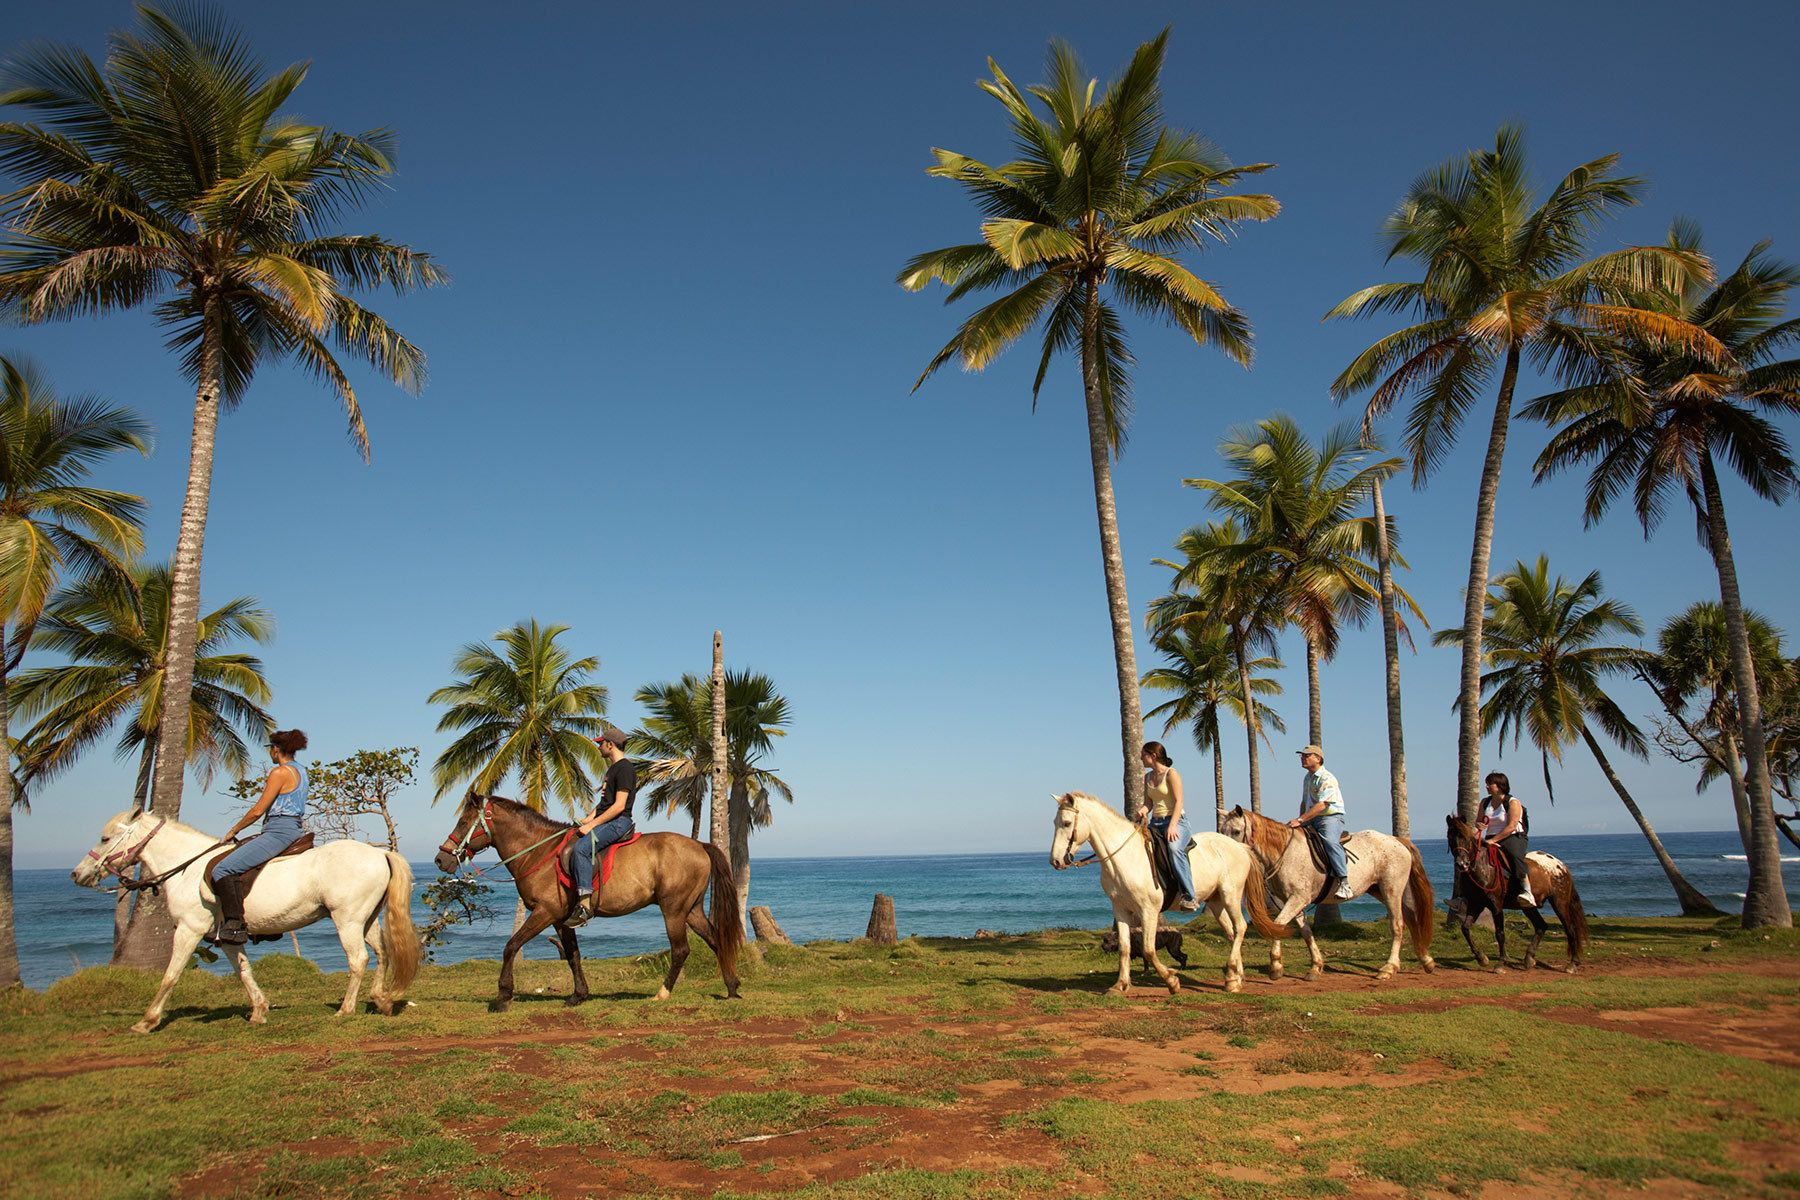 Horsebackriding in the Dominican Republic